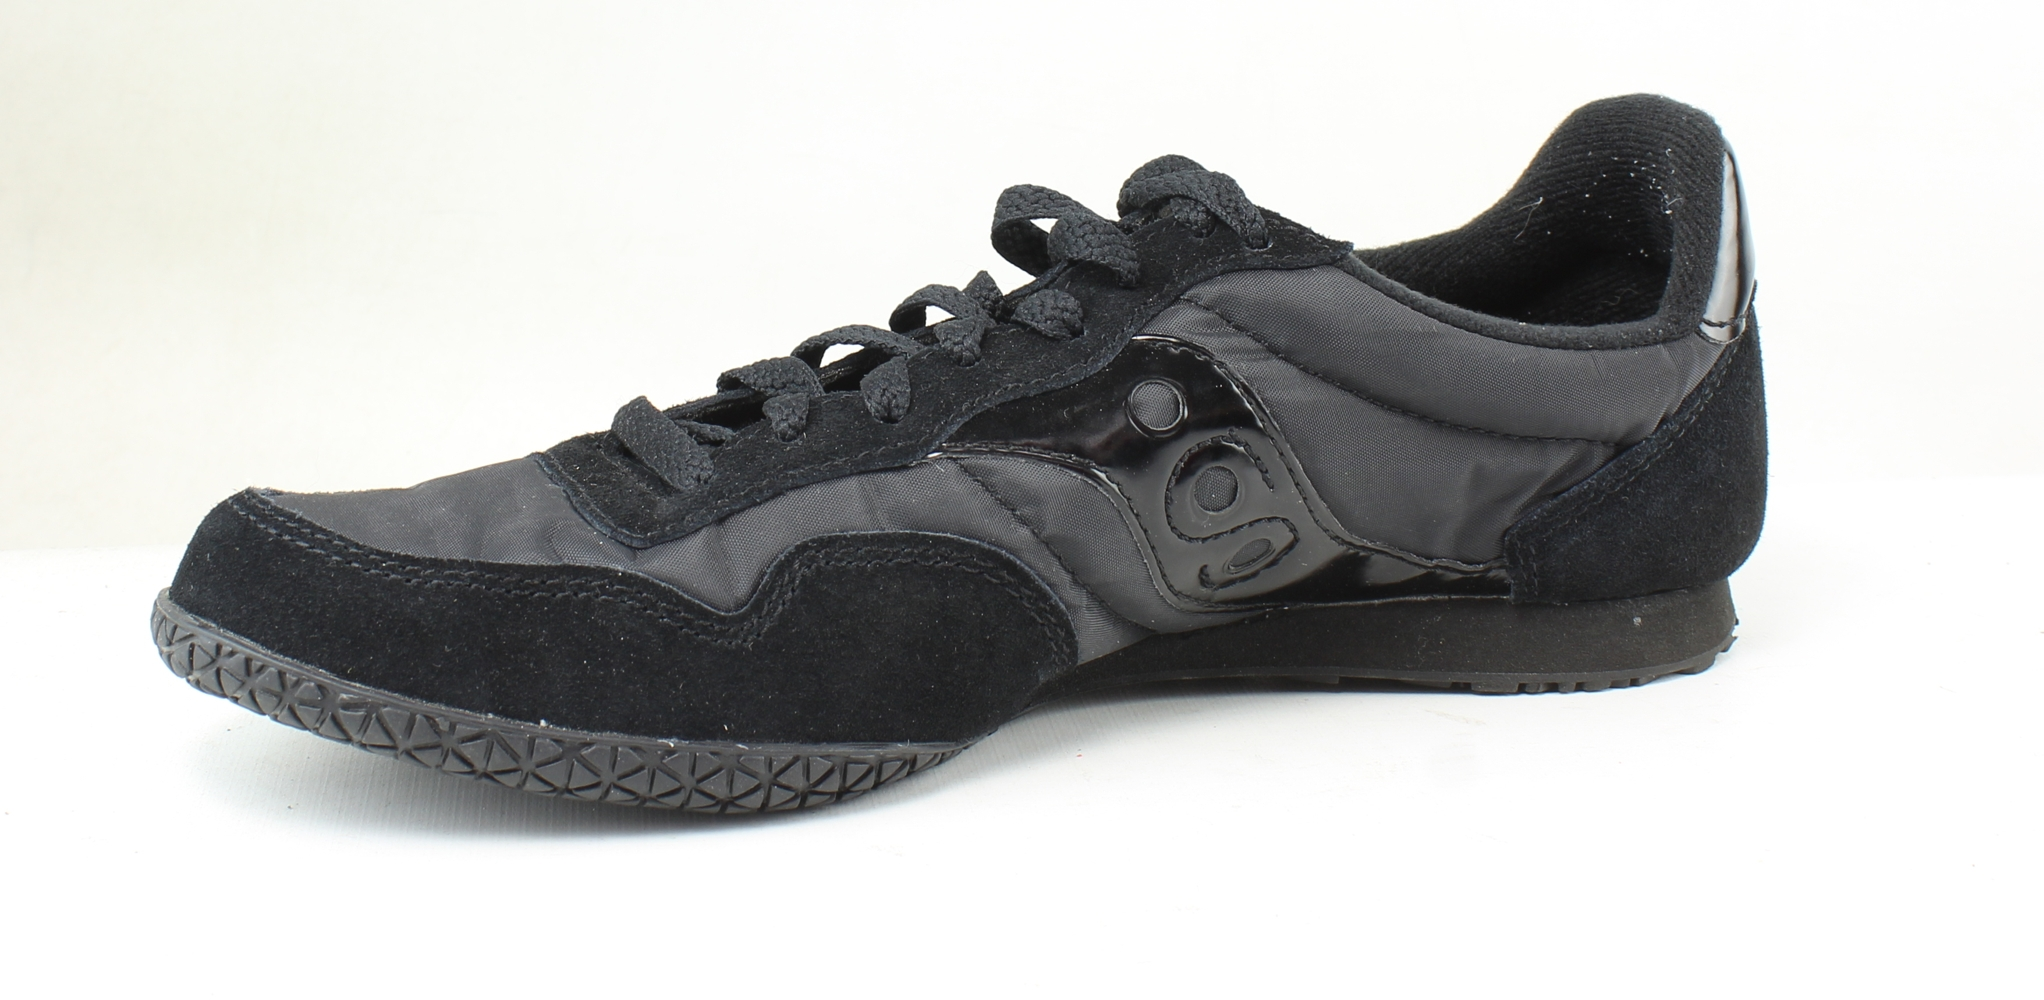 3bcfafb0ced1 Saucony Mens Bullet Black Running Shoes Size 10.5 (110318 ...